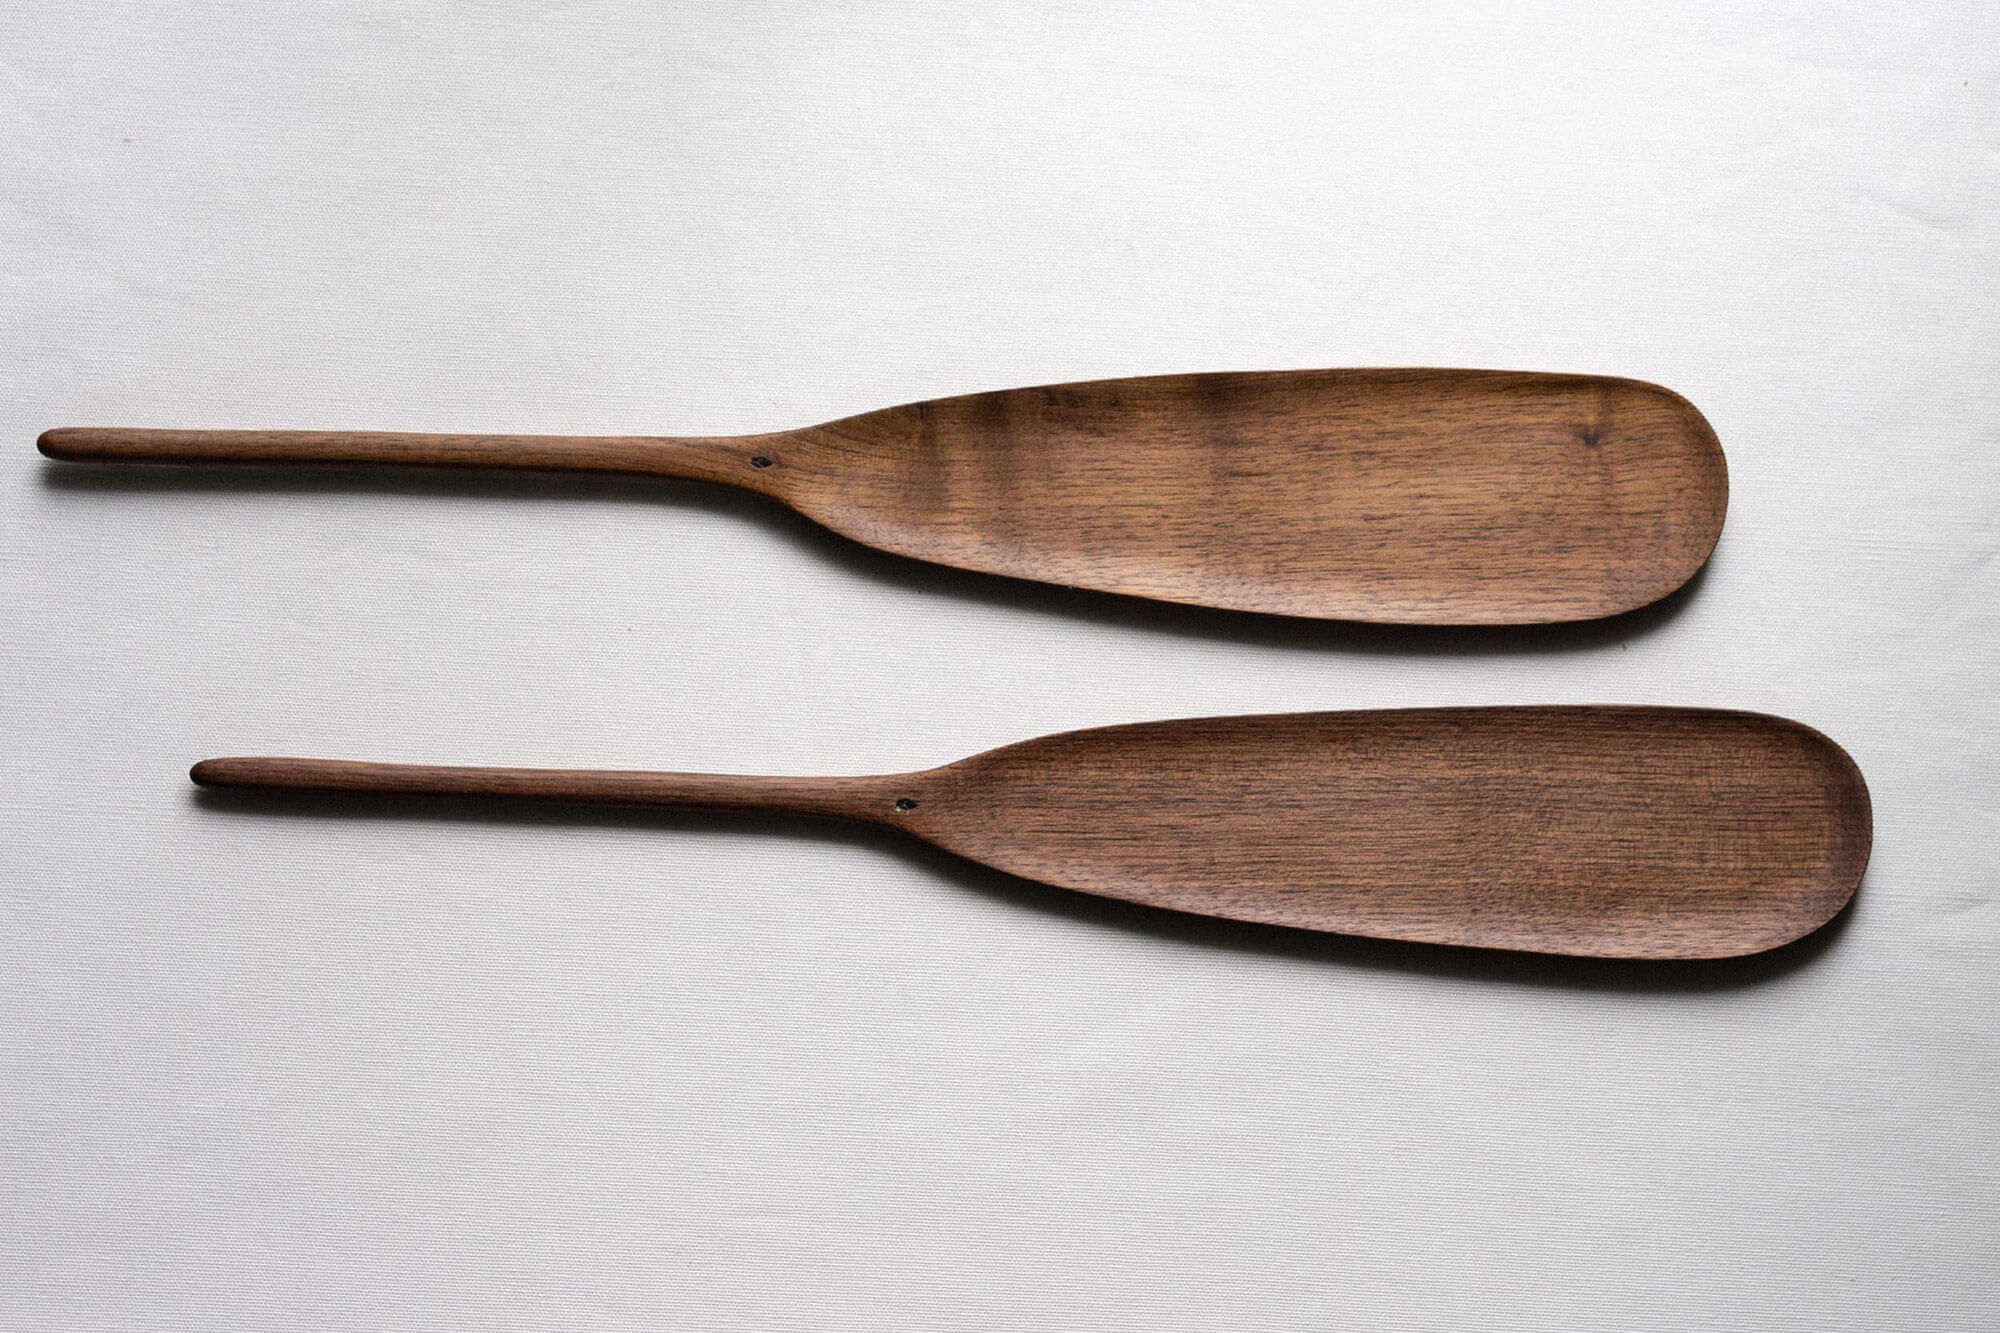 Spatule en bois de noyer issue de la collection 2019 Charme de virginie, sculptée par l'ébéniste Montréalais Guy Lemyre.